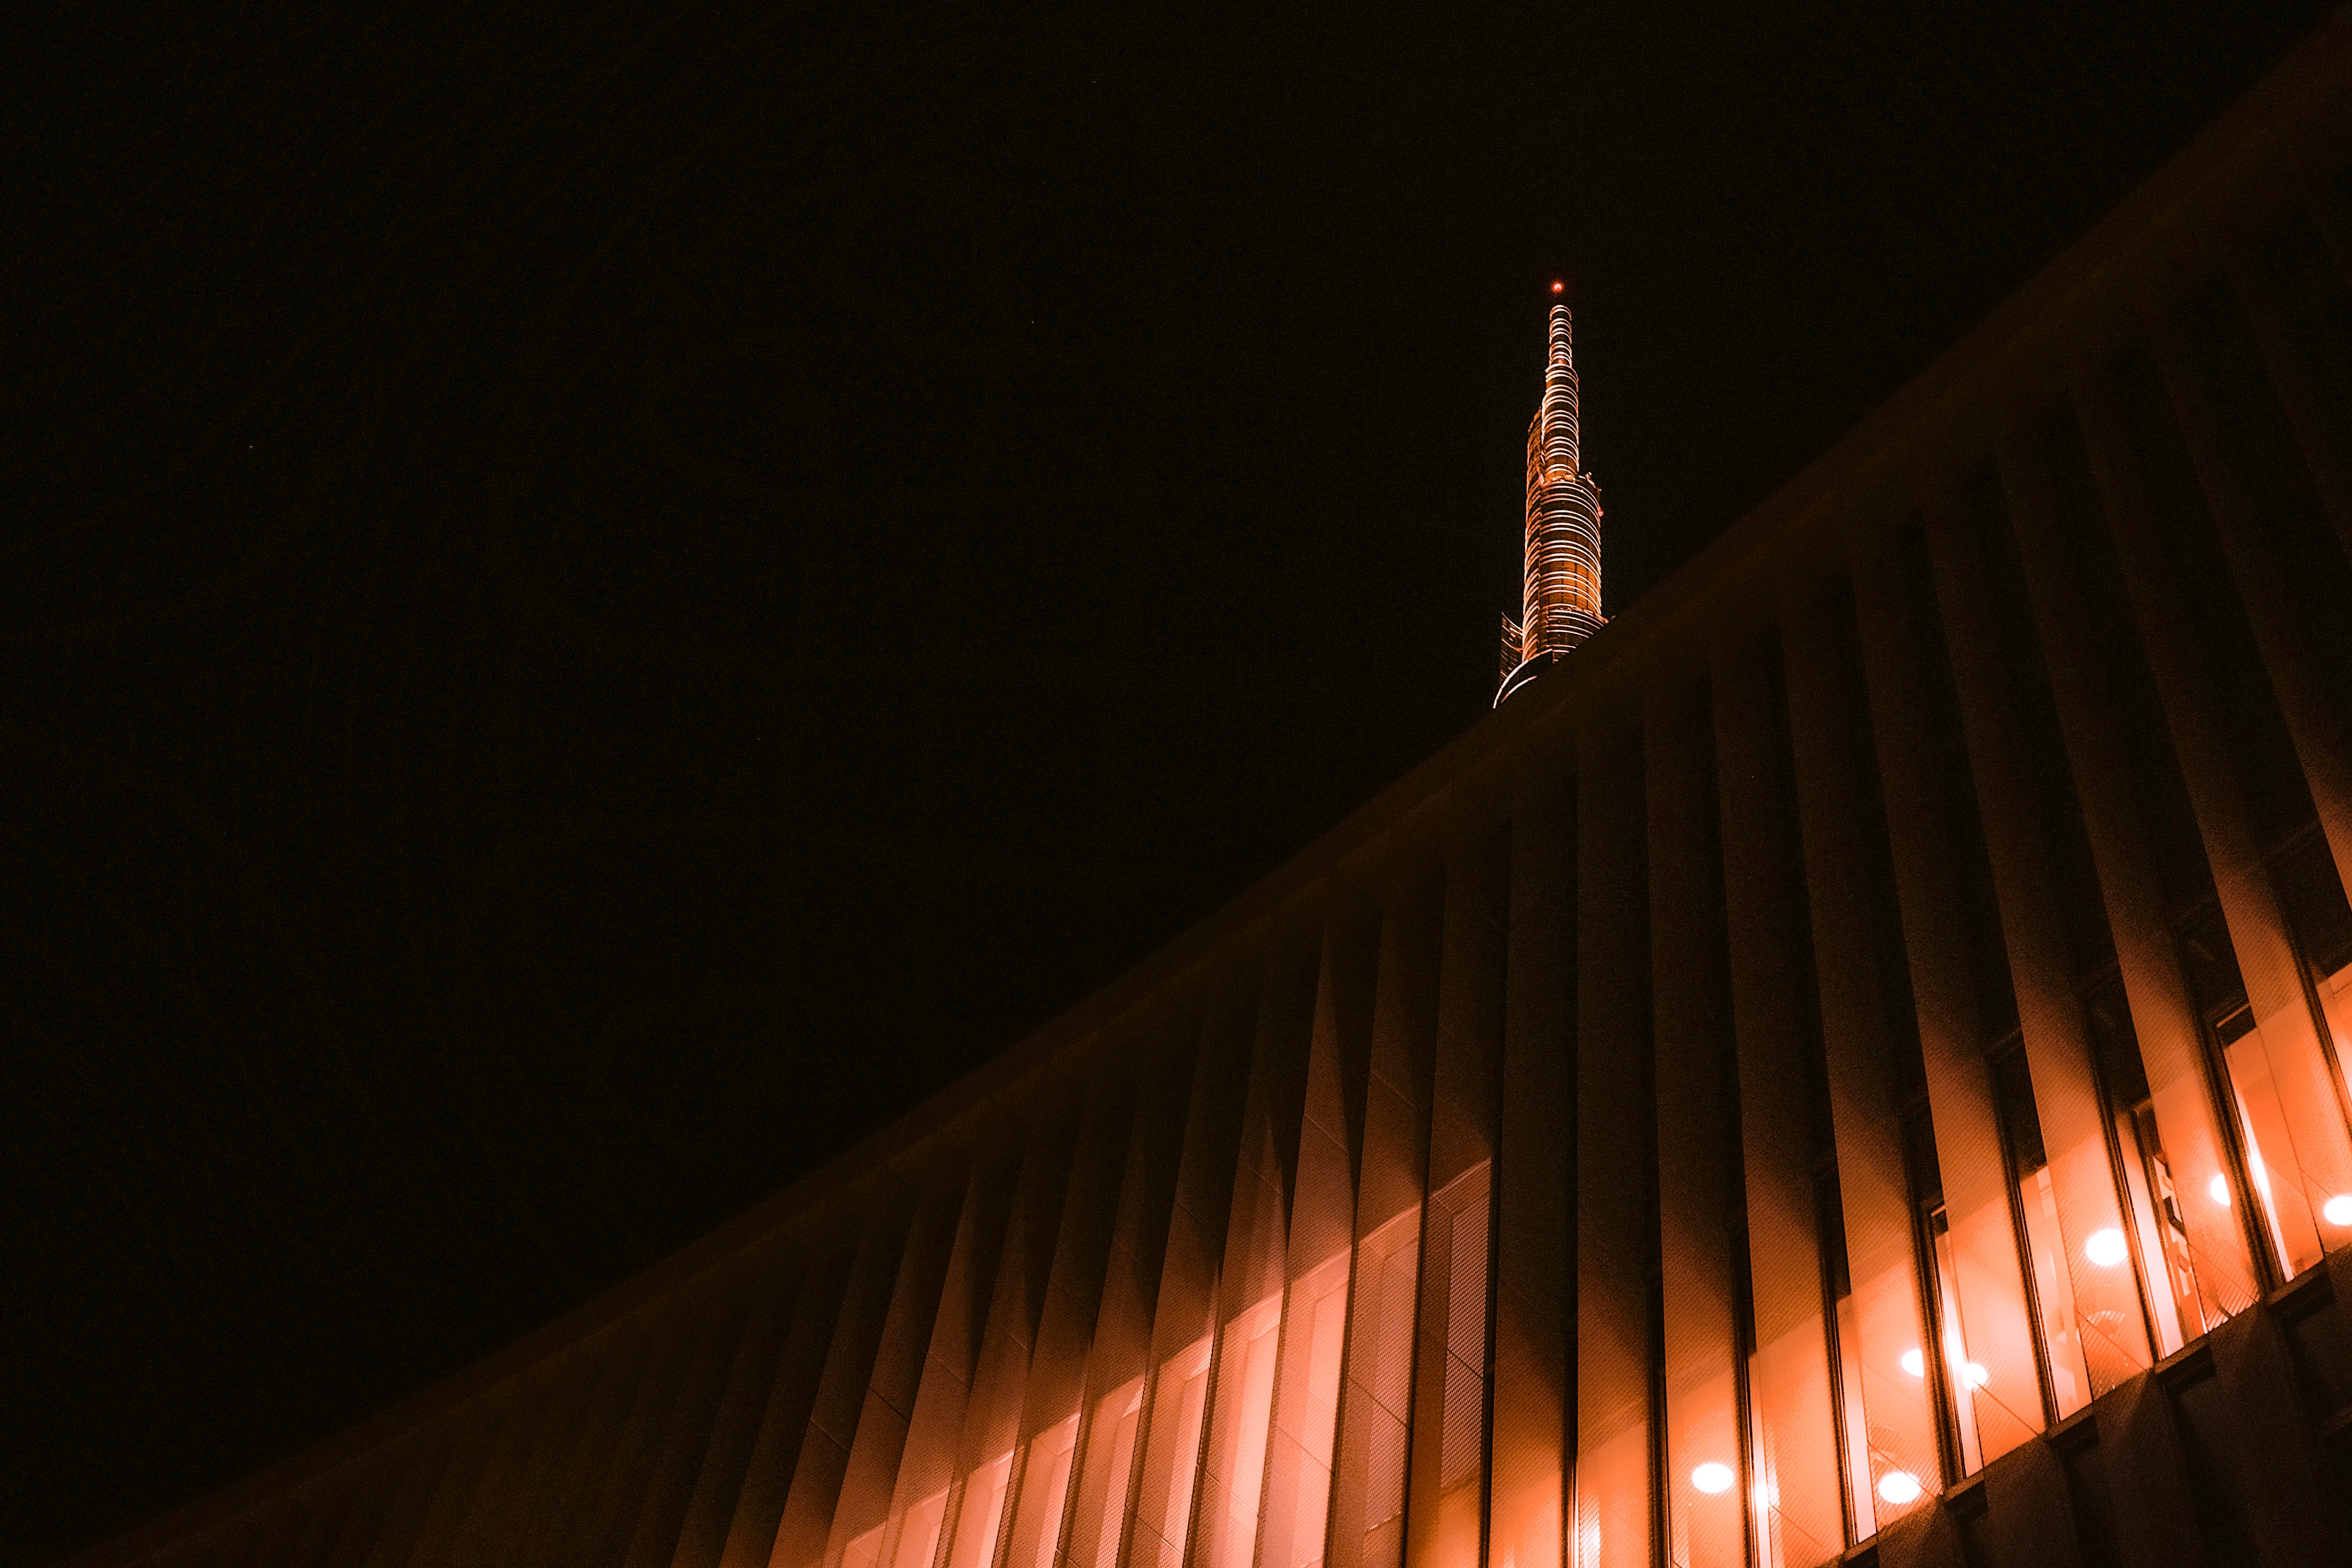 worm's-eye view of tower with orange lights